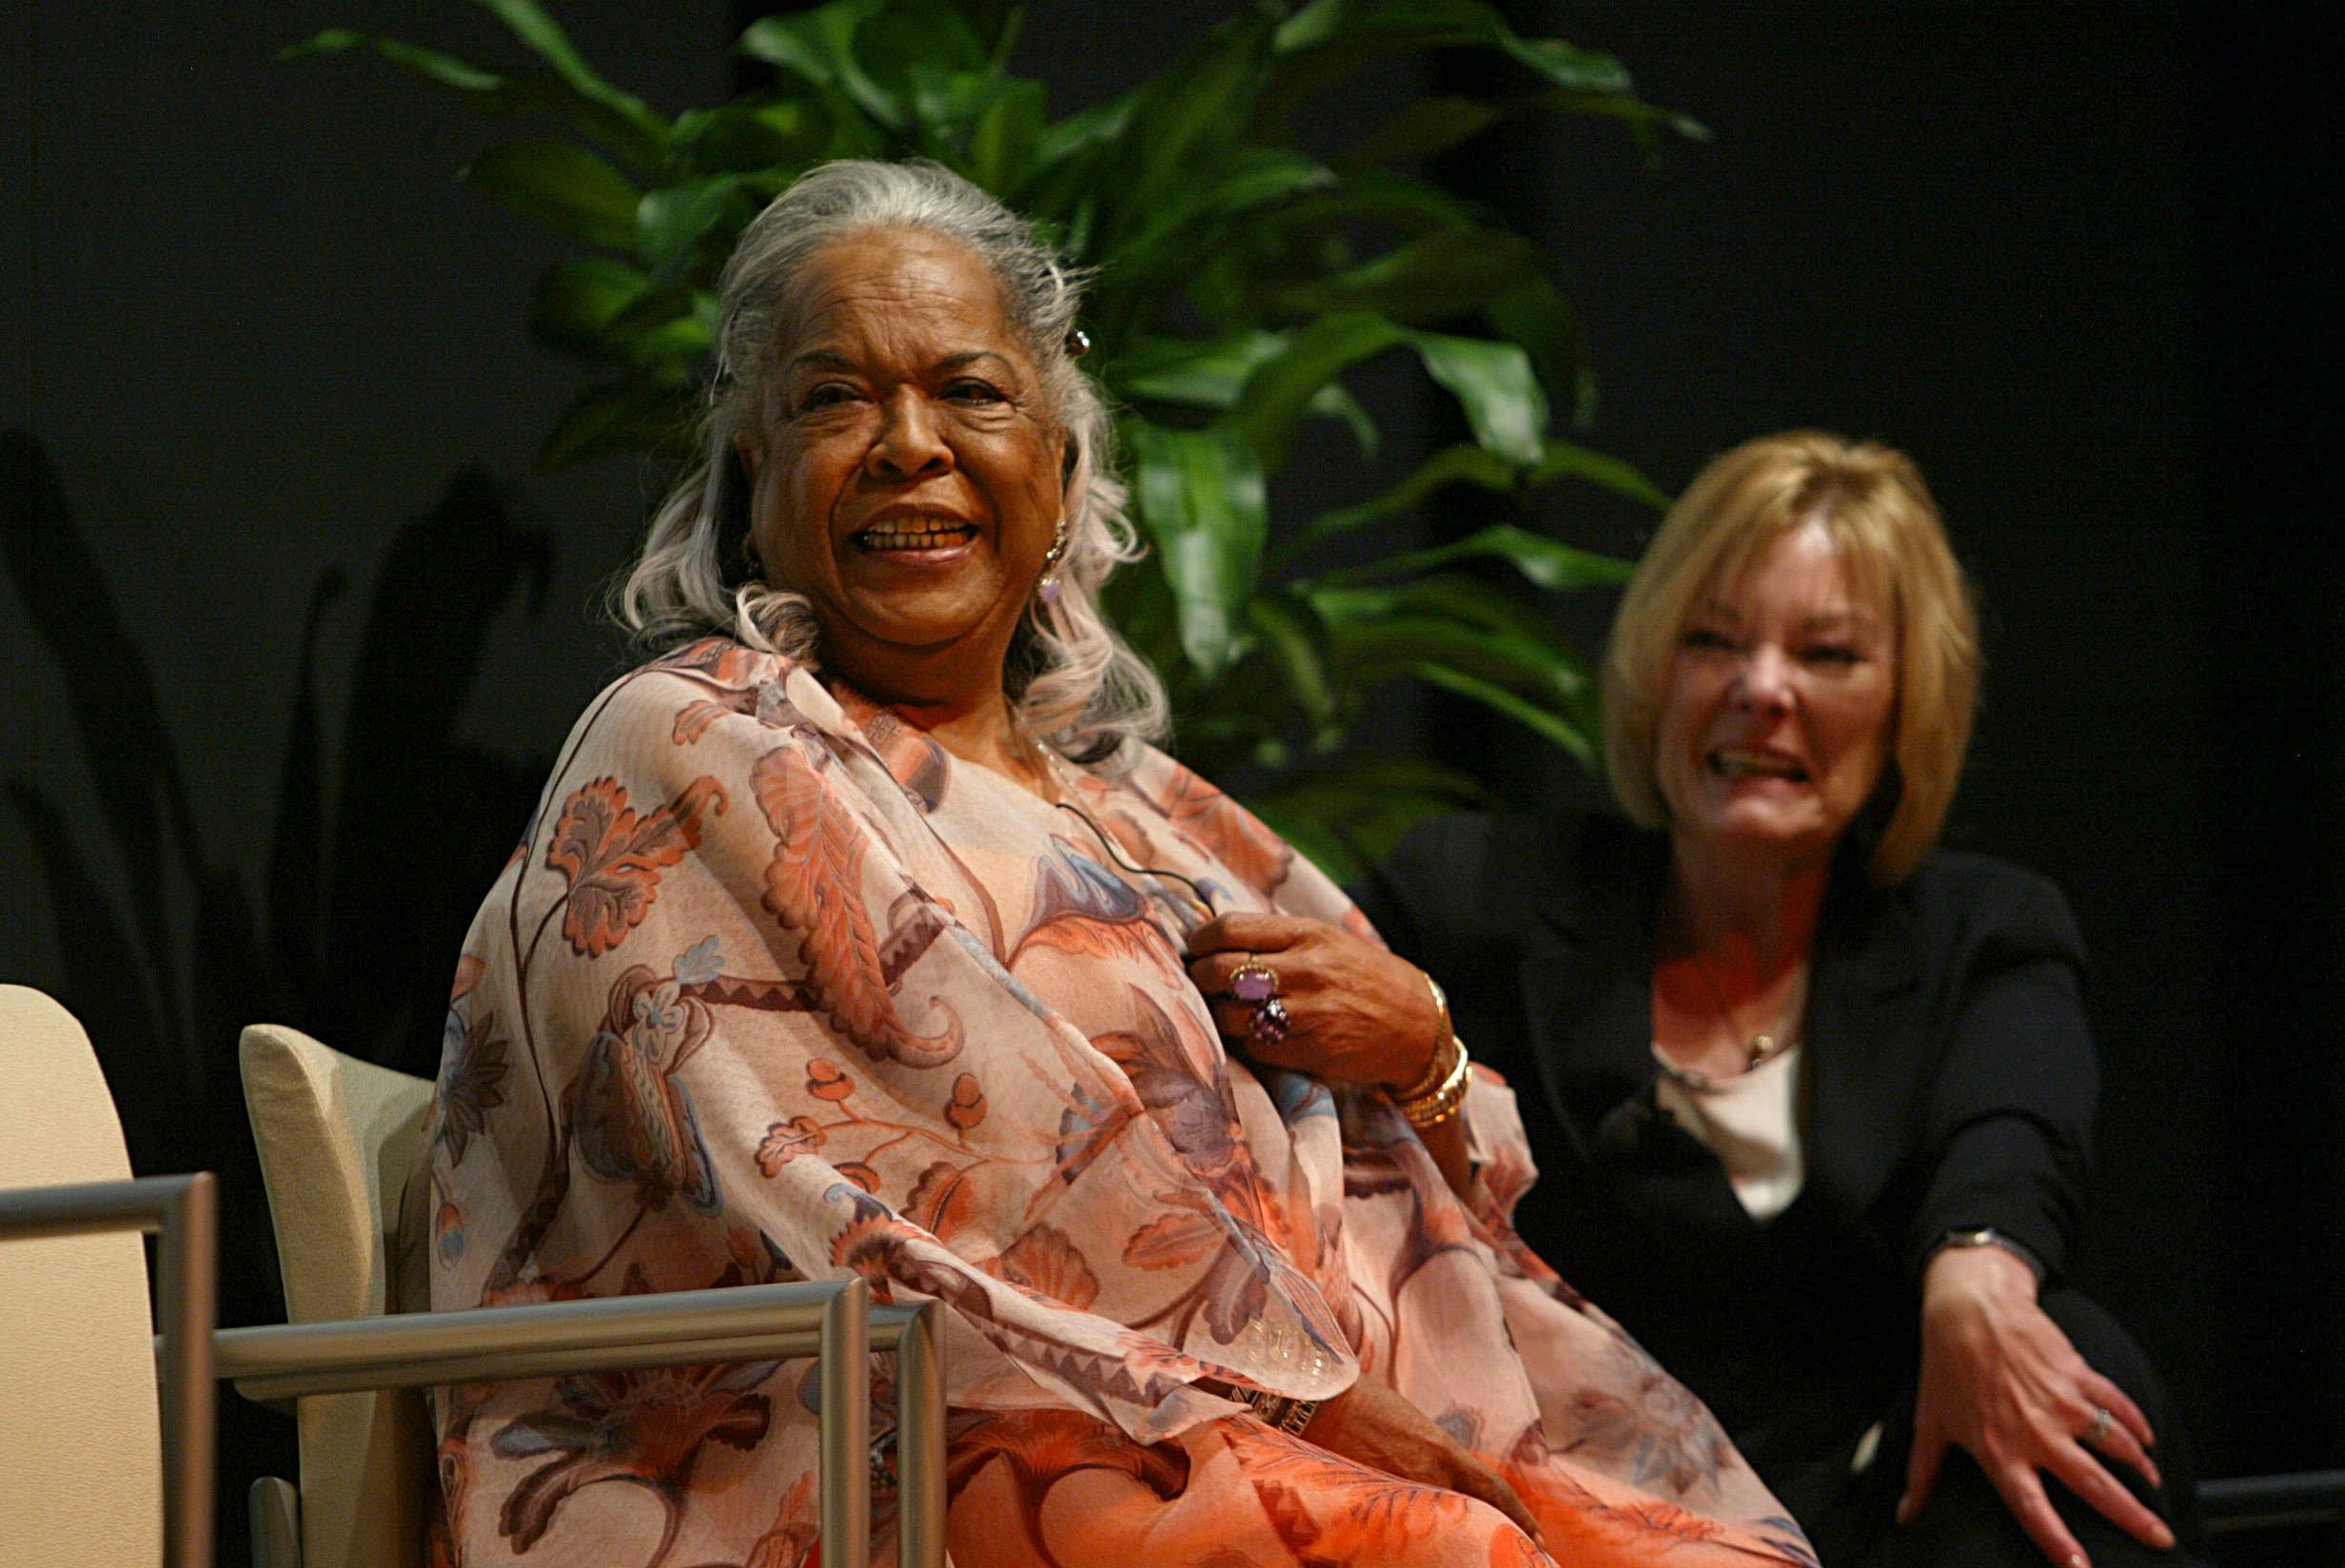 Della Reese and Jane Curtin National Museum of Women in the Arts honors five women at 'Legacies of Women in the Performing Arts' at the Enrique V. Iglesias Conference Center Auditorium Washington on Sep. 14, 2007. (Carrie Devorah / WENN)<p></p>